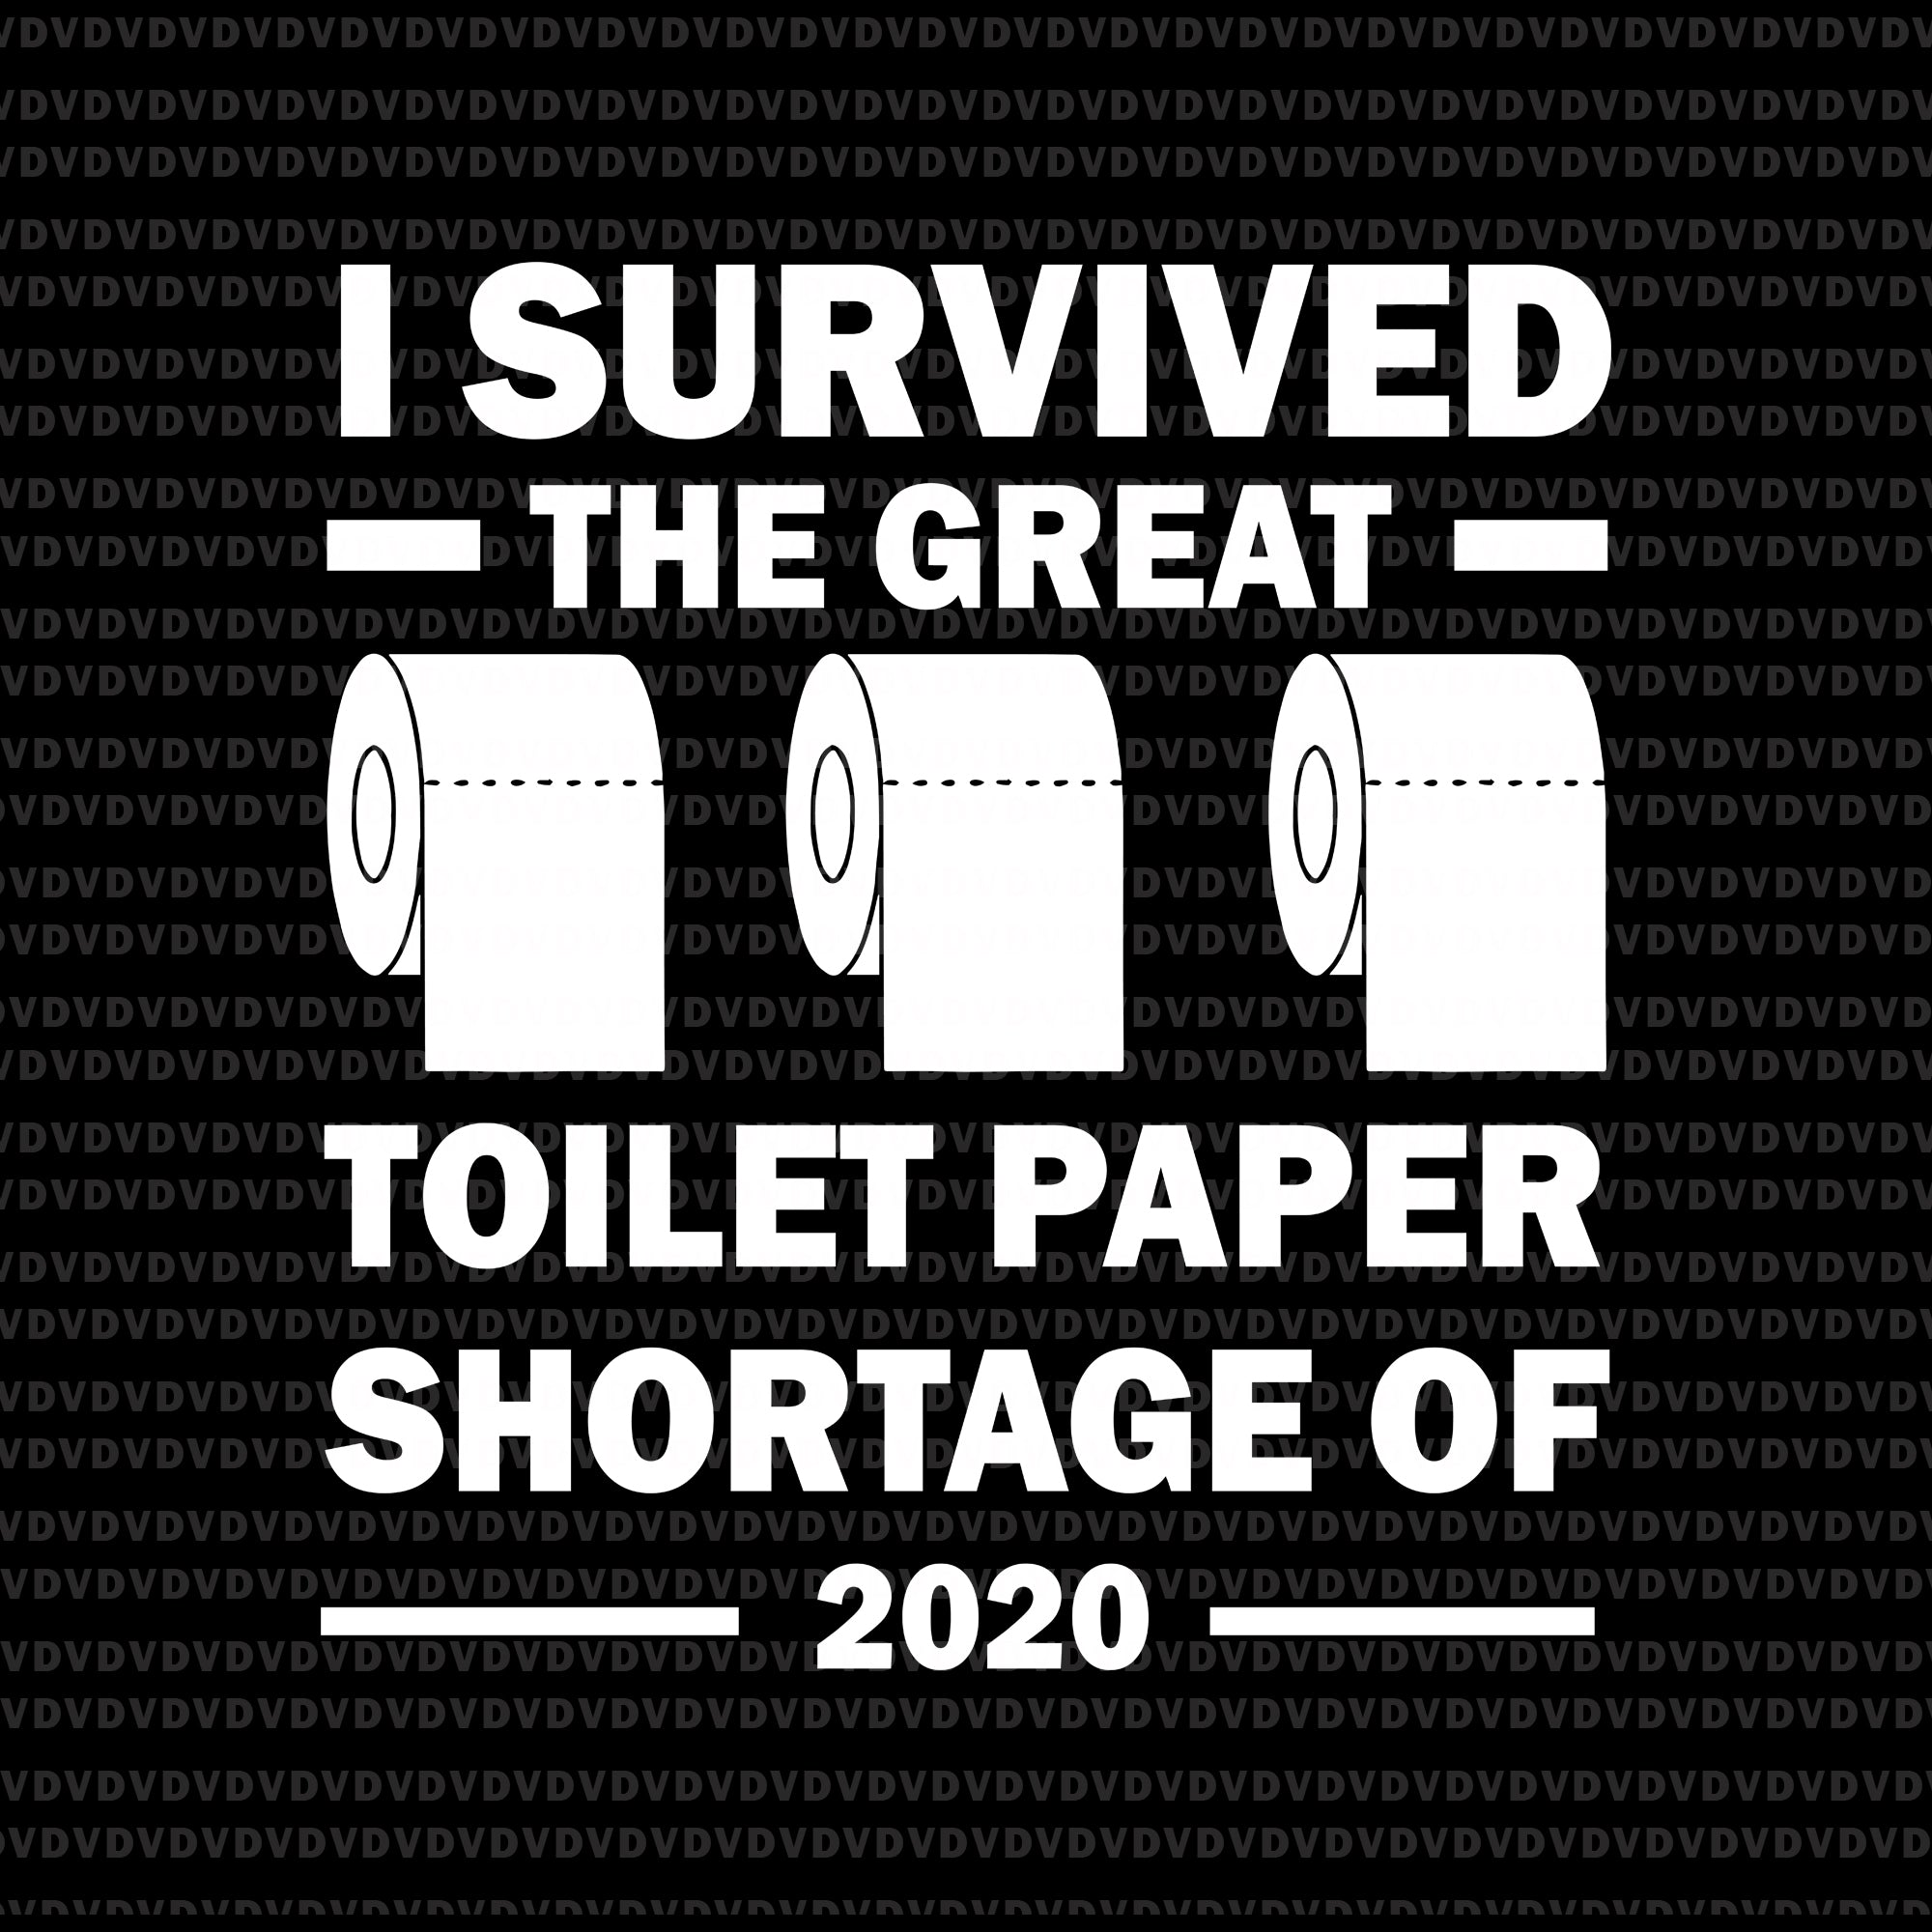 I survived the great toilet paper shortage of 2020 svg, i survived the great toilet paper shortage of 2020 png, i survived the great toilet paper shortage of 2020